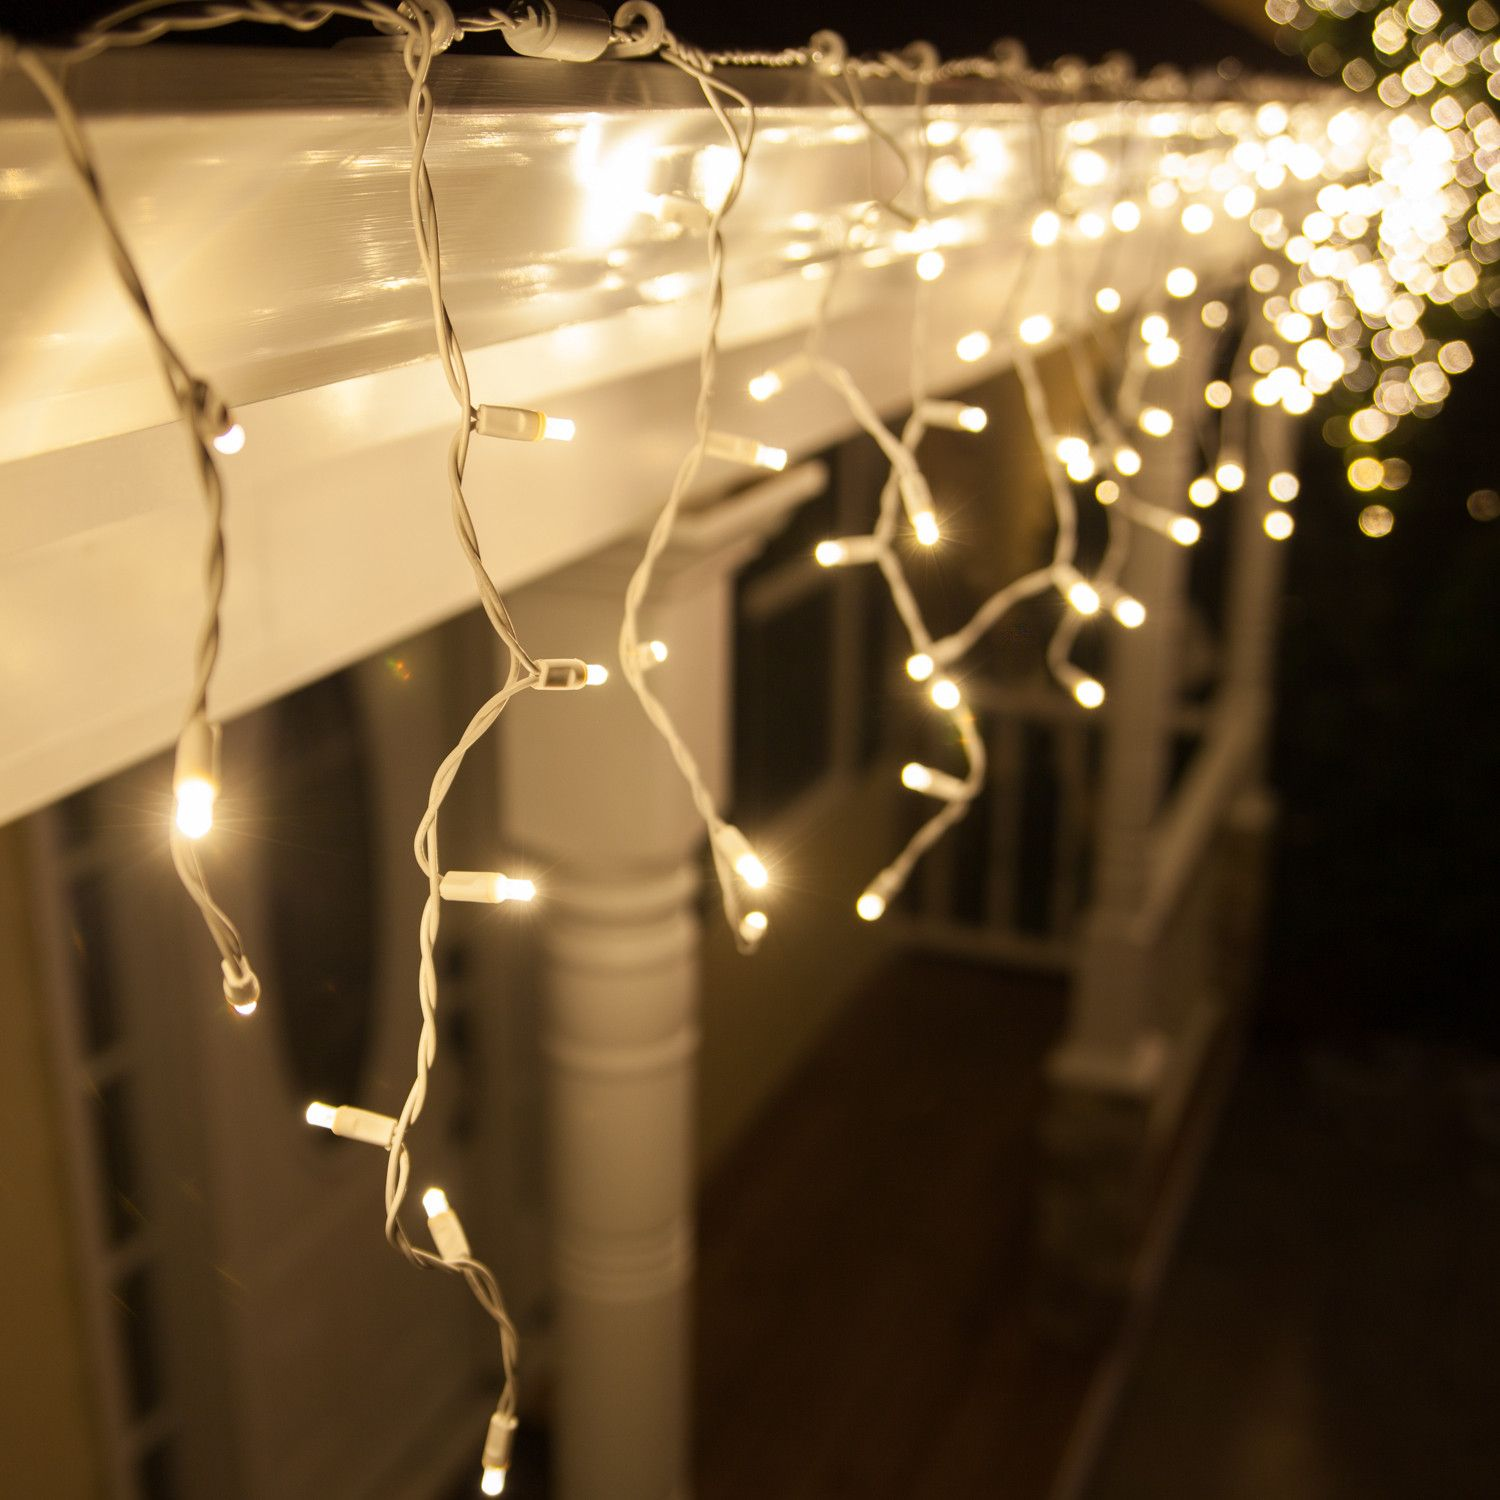 5mm Warm White Led Icicle Lights Christmas Lights Etc Led Icicle Lights White Christmas Lights Led Christmas Lights